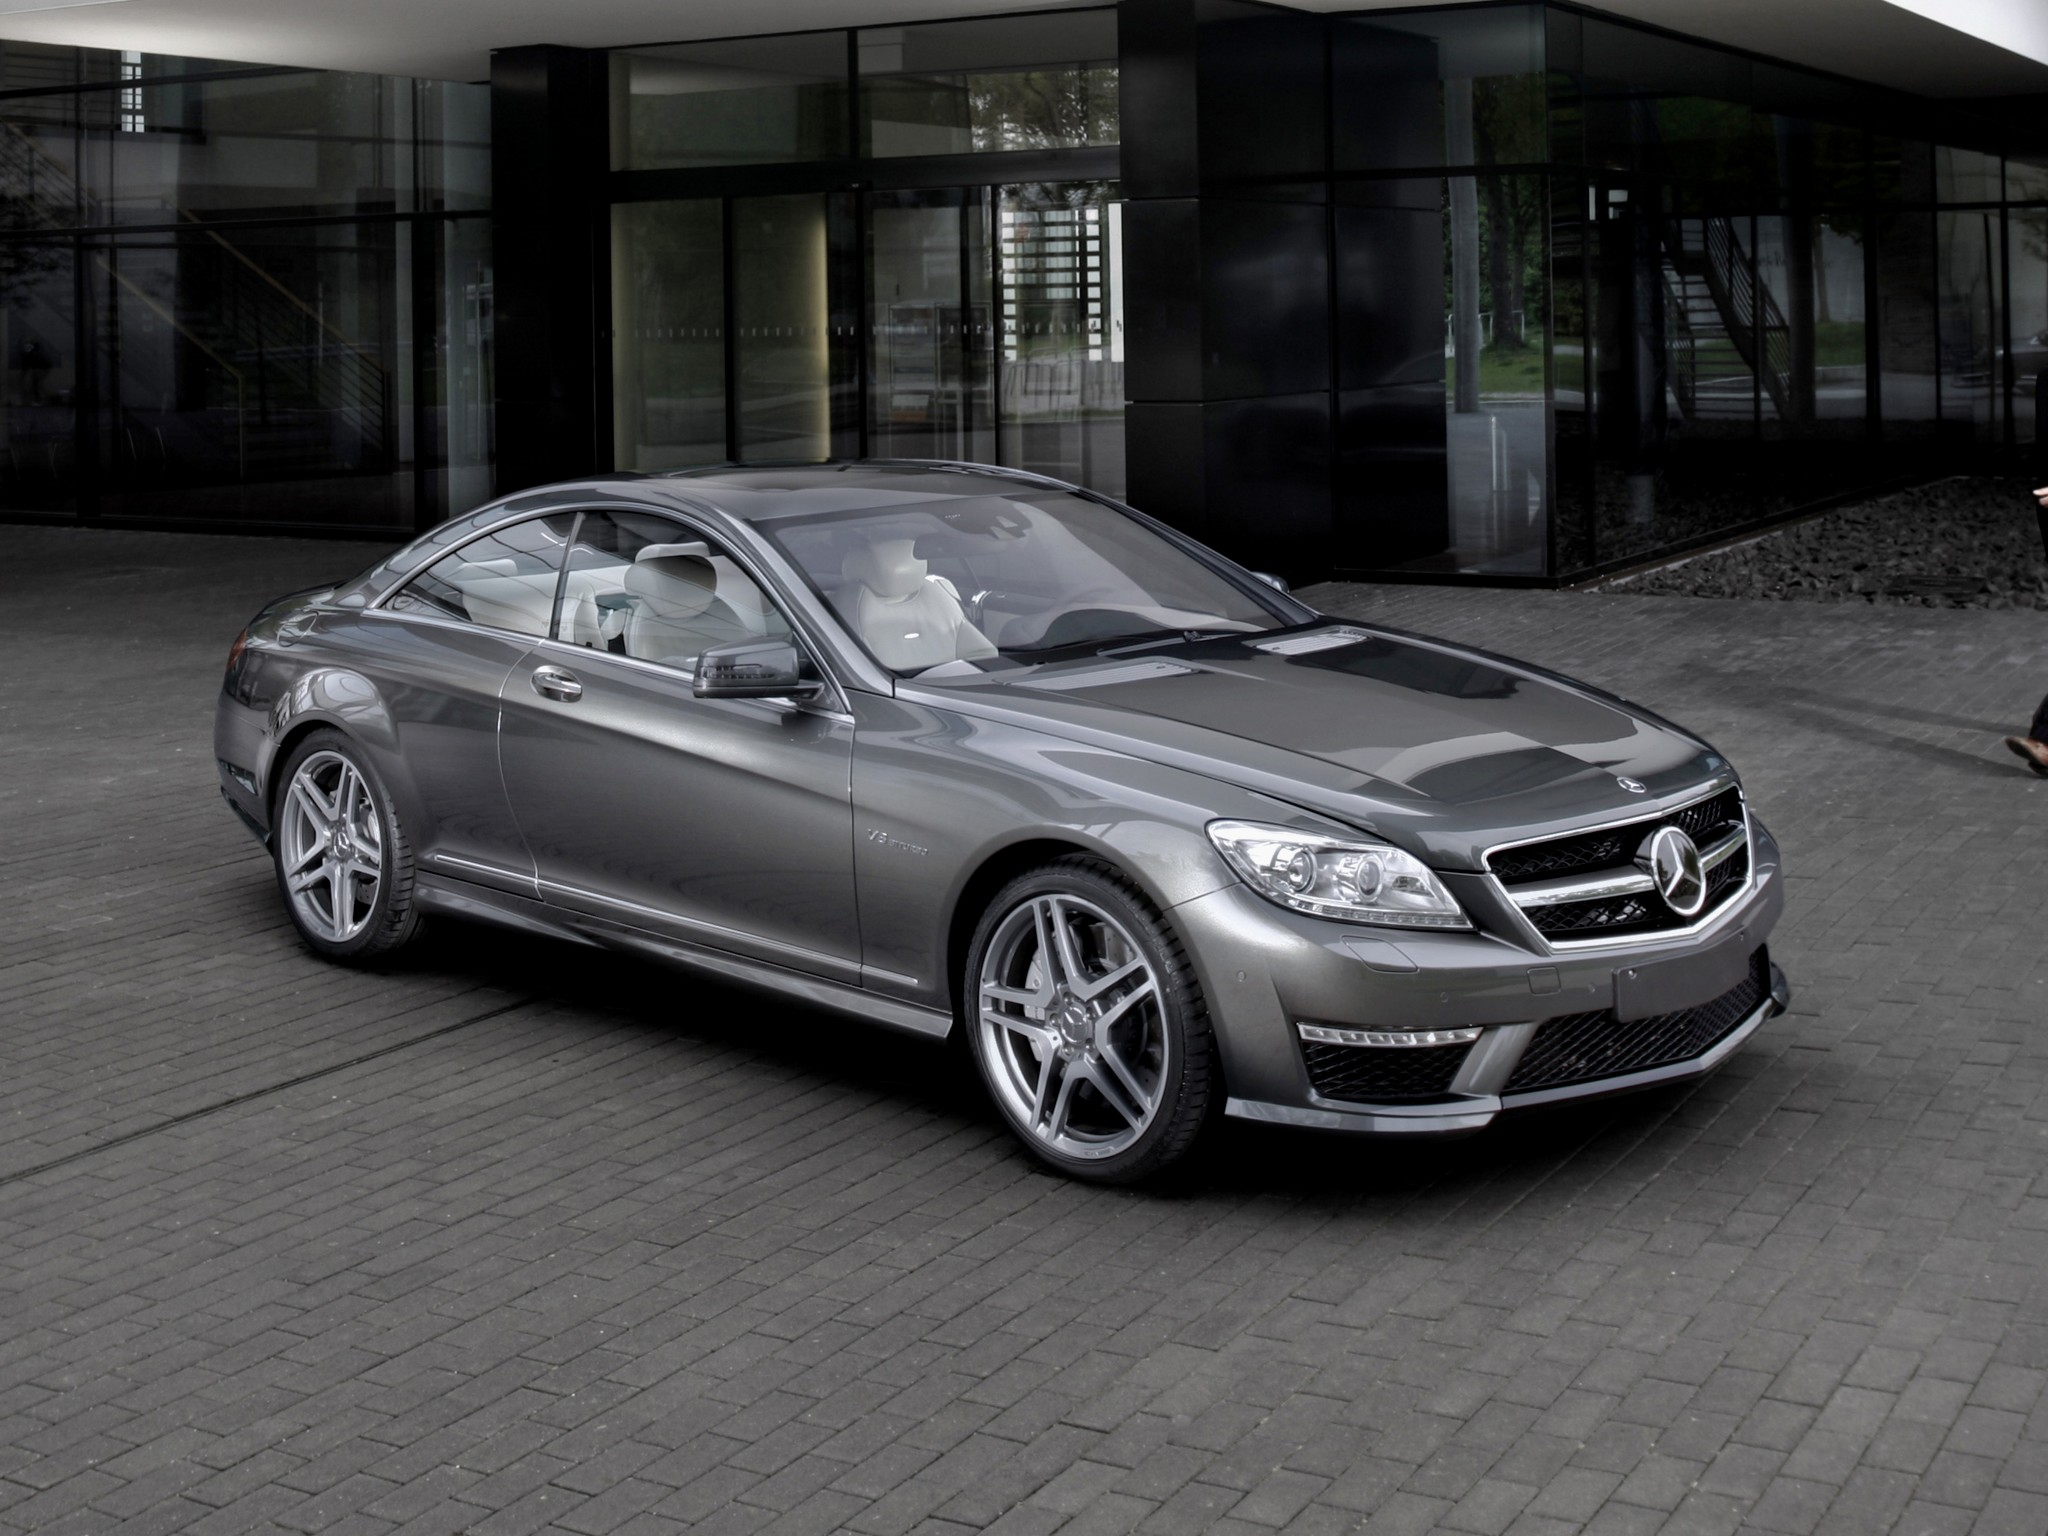 Cl63 amg specs auto express for Mercedes benz cl 63 amg price